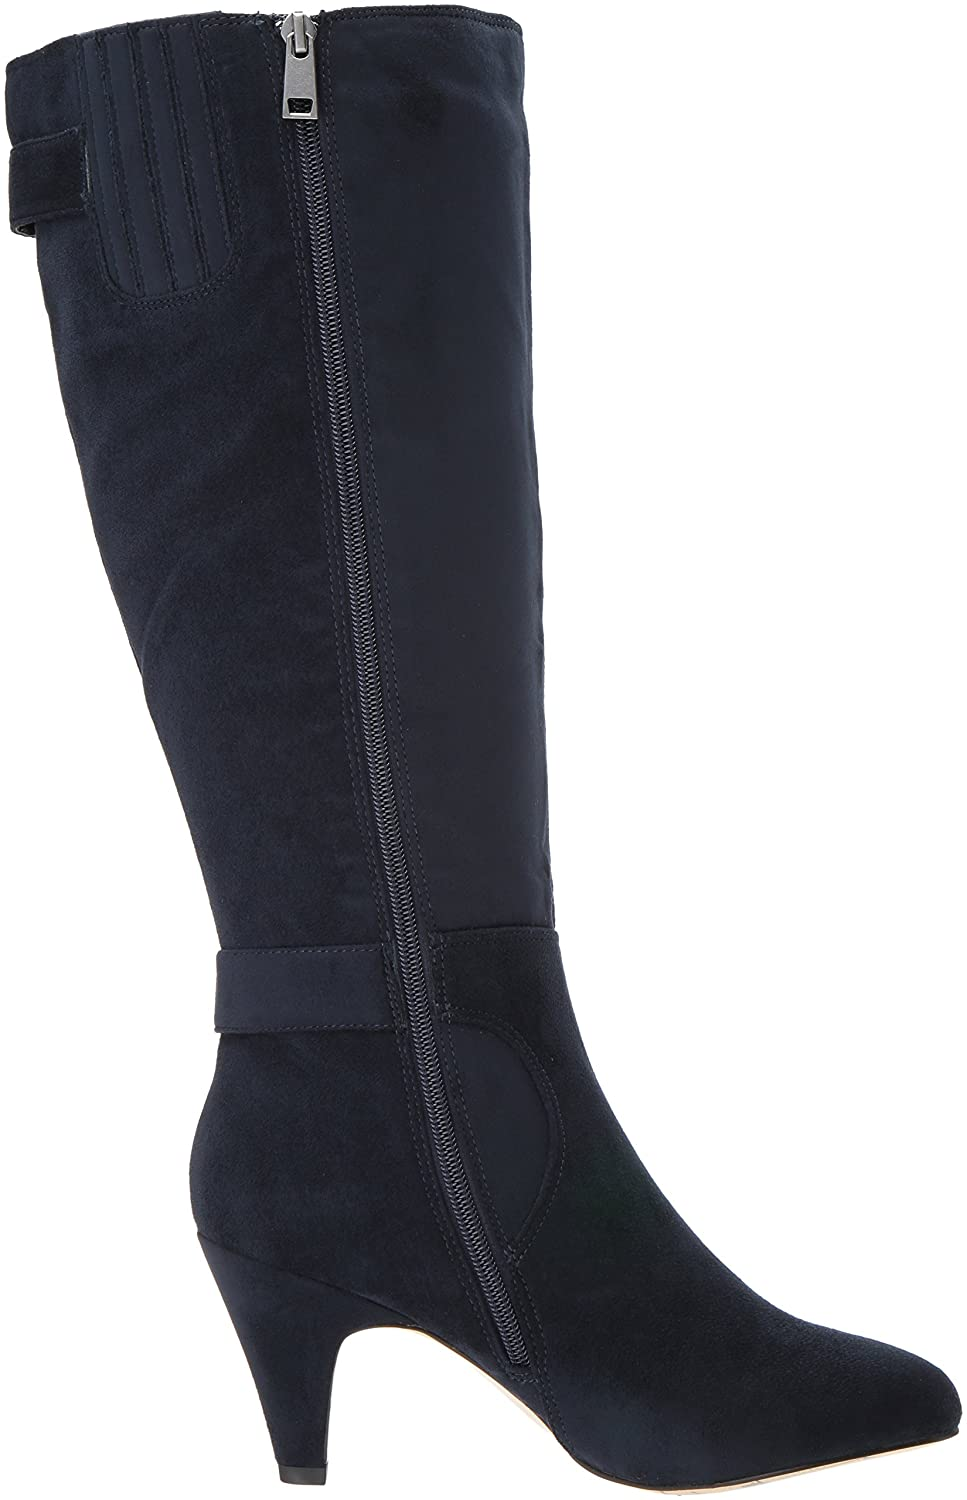 Bella Vita Women's Boot Toni Ii Plus Harness Boot Women's B06ZYJNZRY 8.5 B(M) US|Navy Super Suede ead9b0